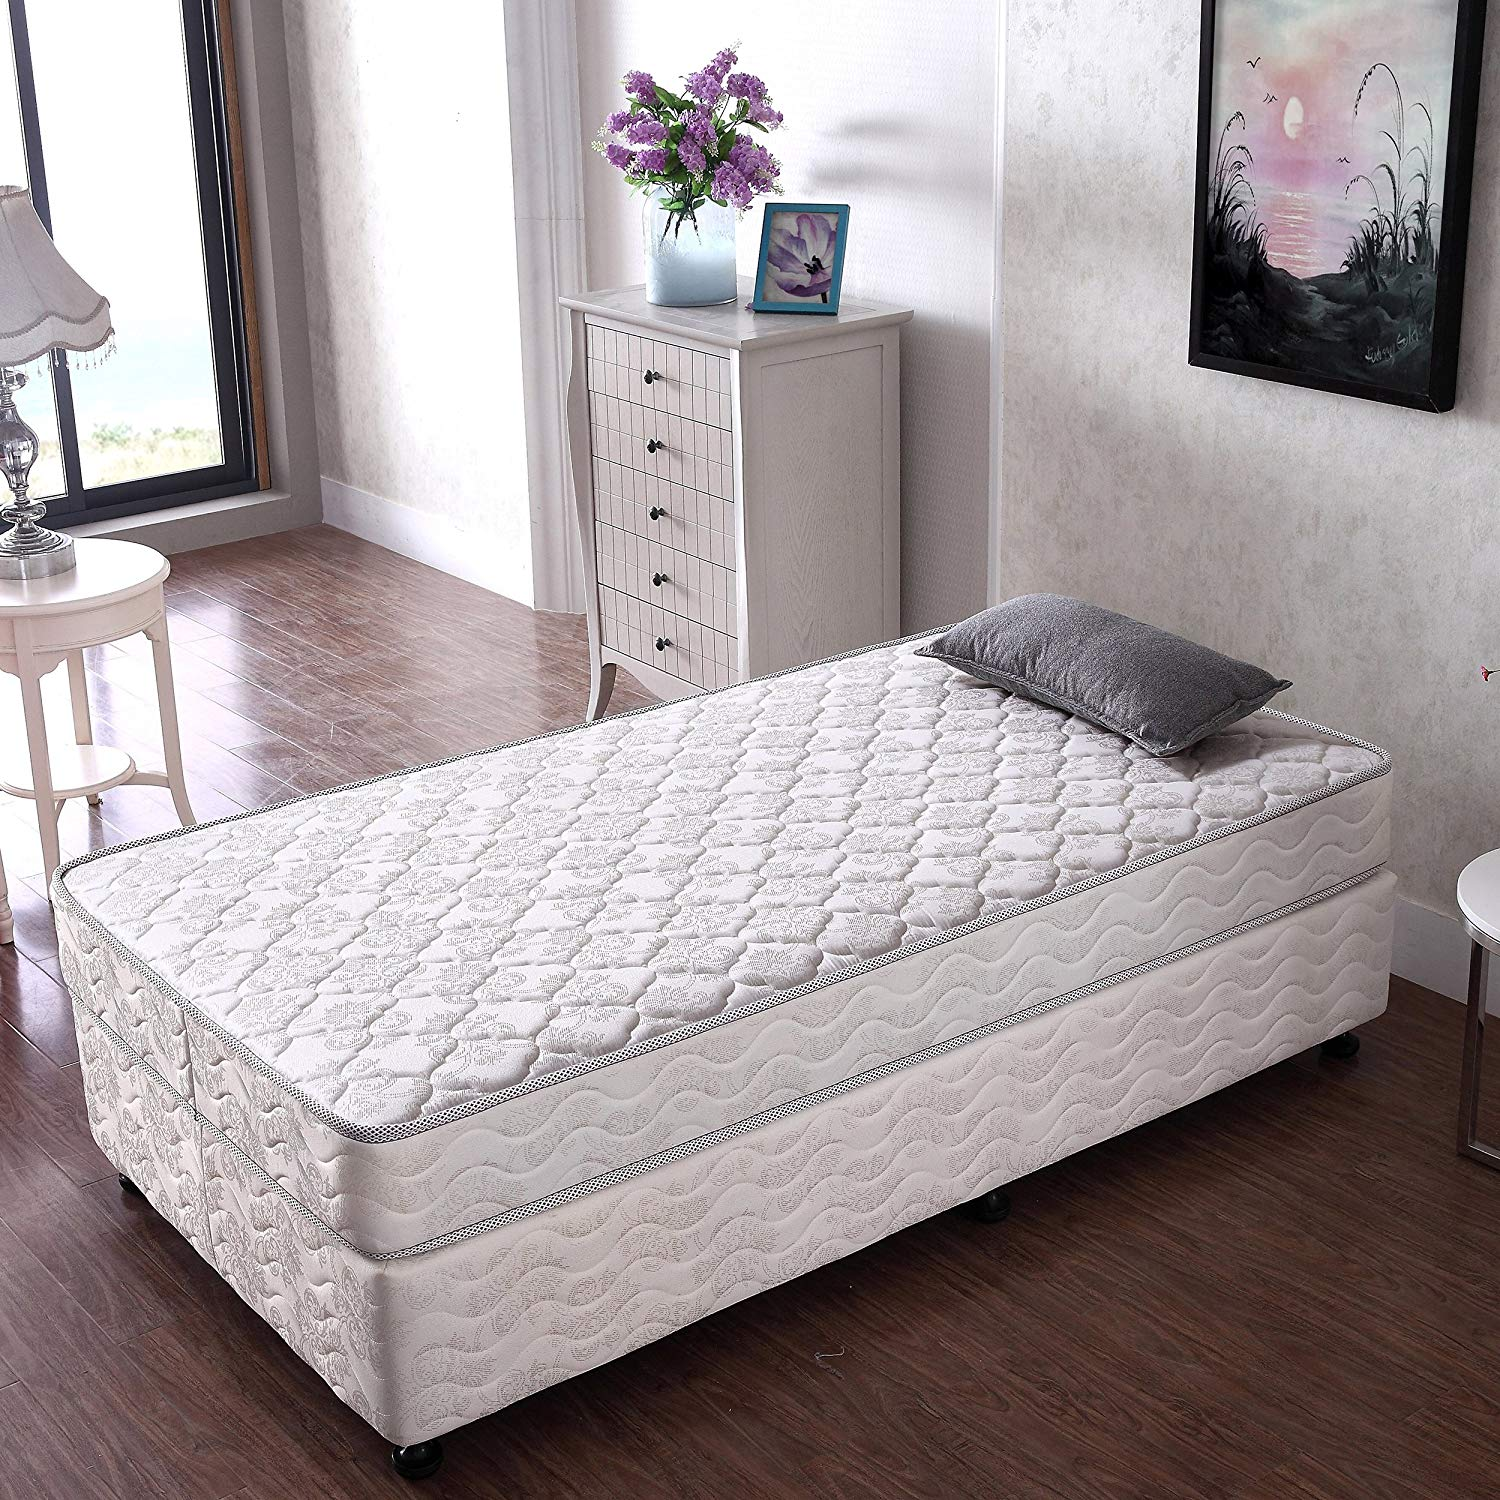 Bed And Mattress Deals Cheap Bedroom Furniture Concrete Mattress Find Bedroom Furniture